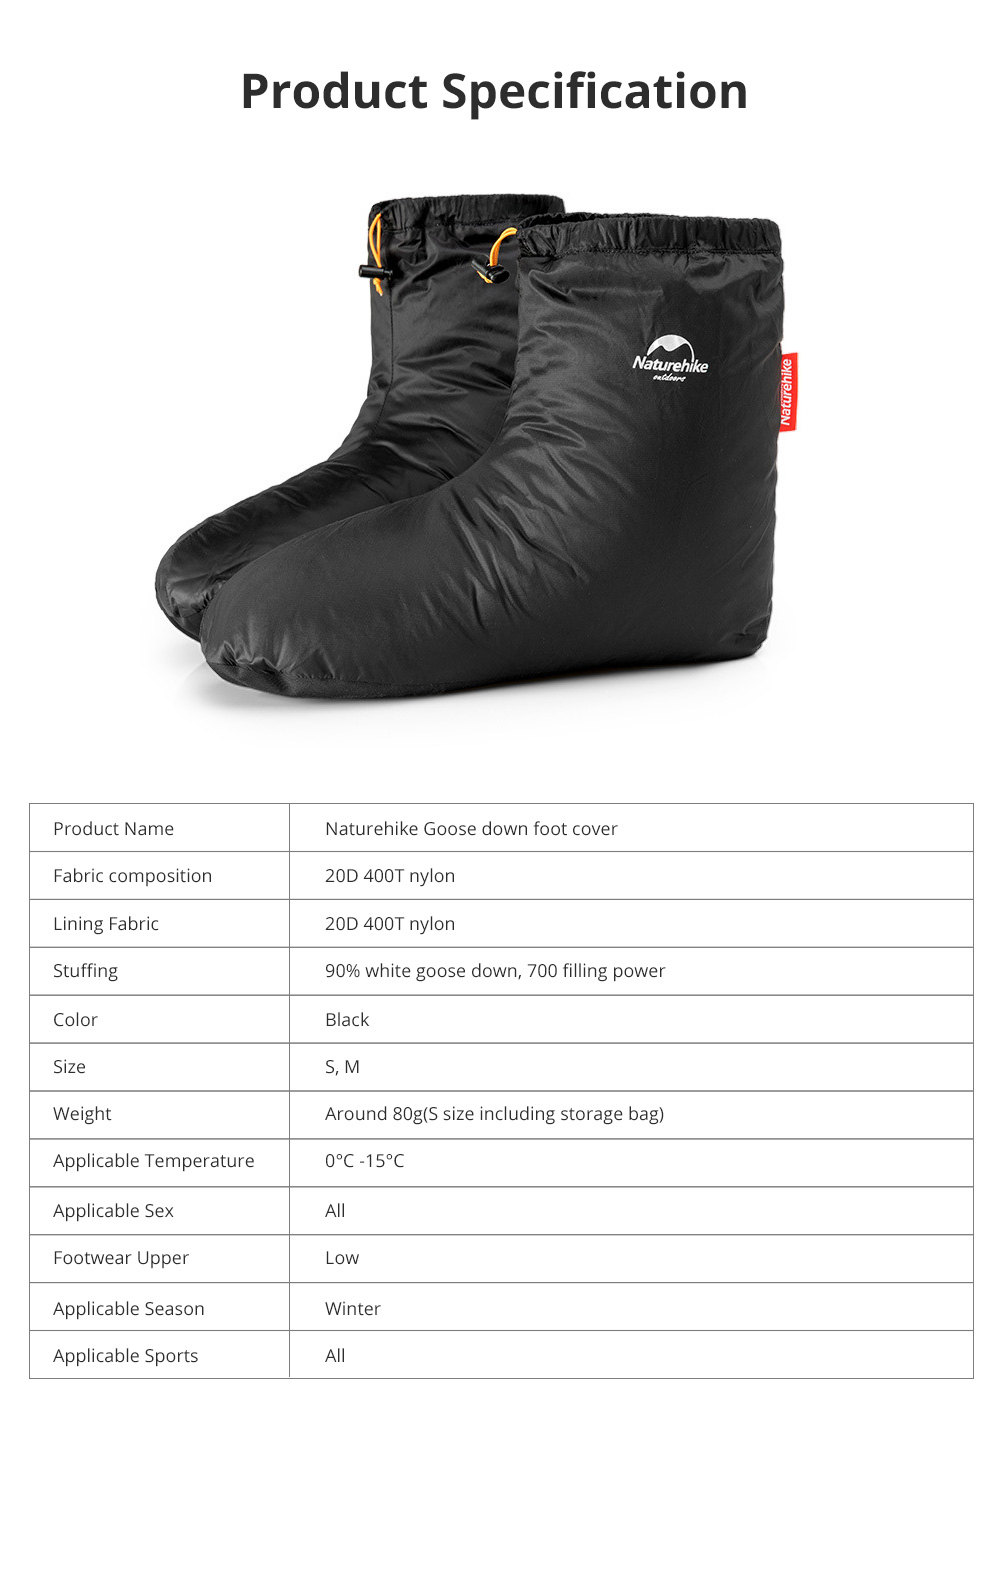 Naturehike Goose Down Foot Shoes Cover for Outdoor Use Wind Proof and Waterproof Foot Cover Thermal Lightweight 7